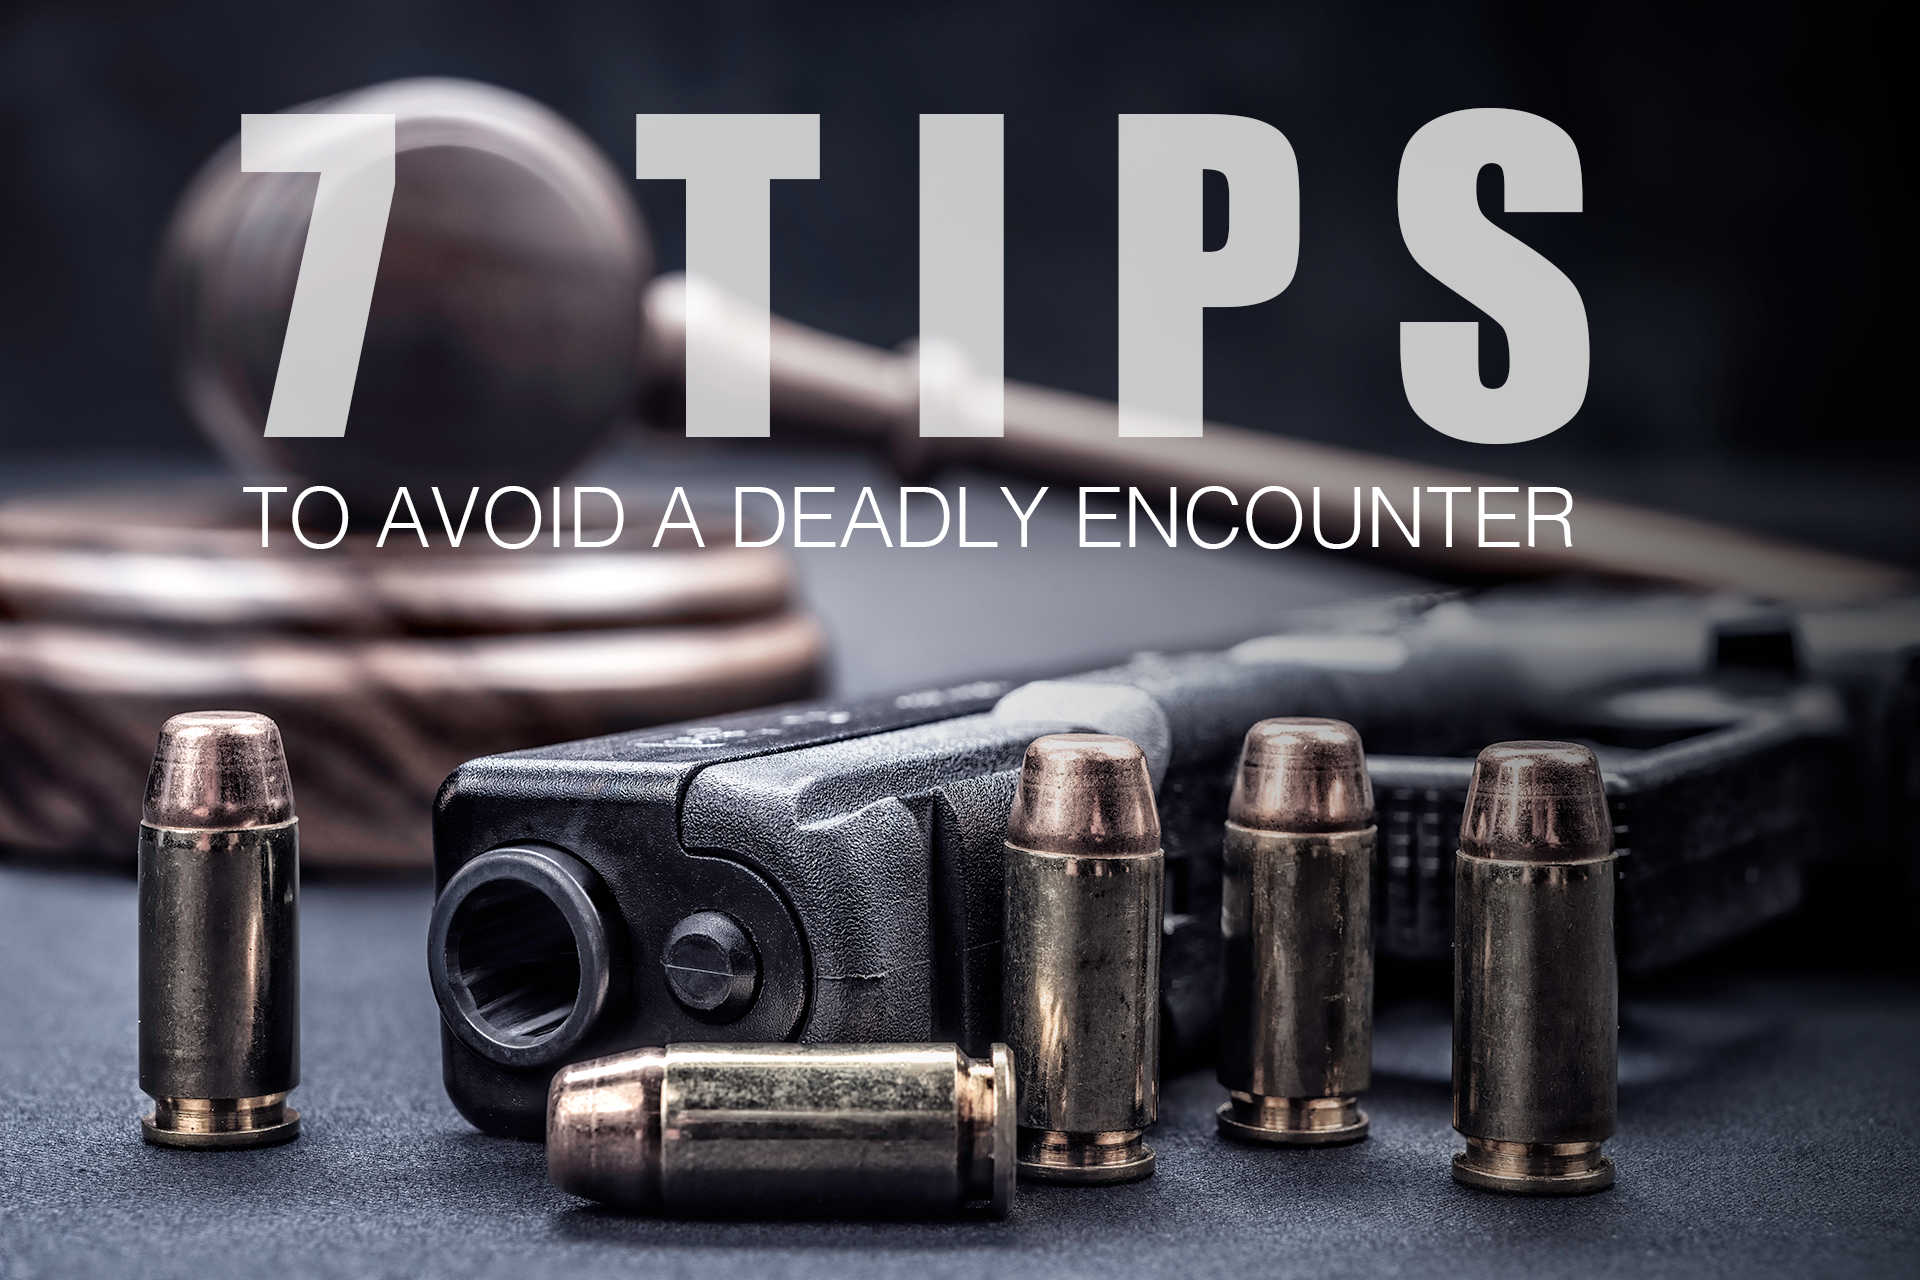 7 Tips To Prevent a Deadly Encounter